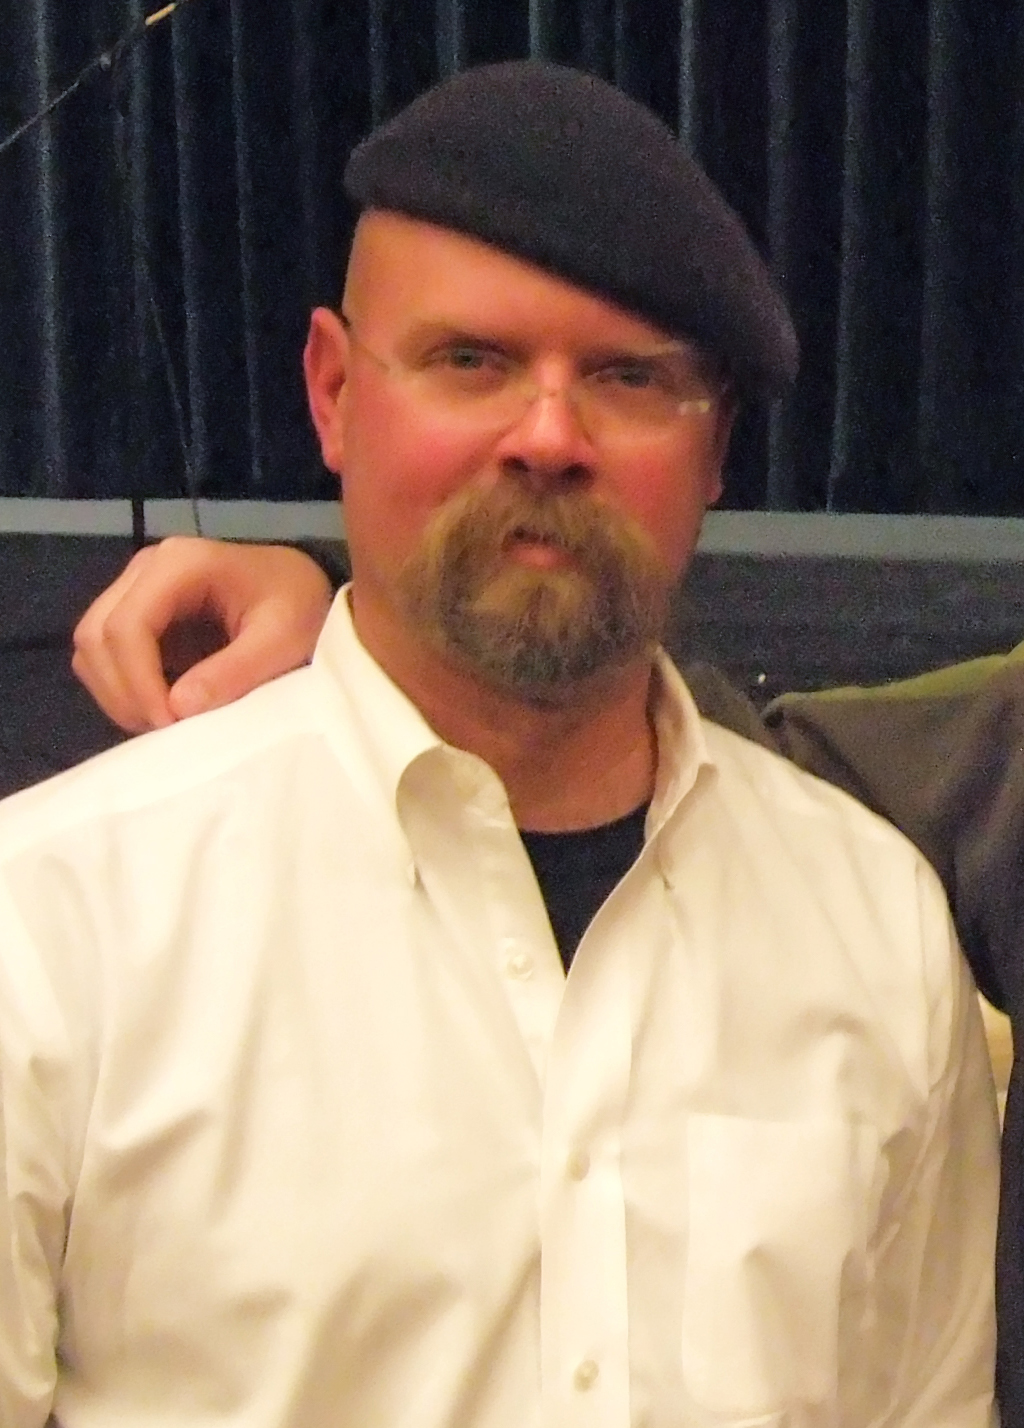 jamie hyneman blendojamie hyneman instagram, jamie hyneman russian, jamie hyneman wife, jamie hyneman young, jamie hyneman 2017, jamie hyneman adam savage, jamie hyneman robot, jamie hyneman youtube channel, jamie hyneman child, jamie hyneman boots, jamie hyneman from mythbusters, jamie hyneman leatherman, jamie hyneman imdb, jamie hyneman about adam, jamie hyneman blendo, jamie hyneman sunglasses, jamie hyneman glasses, jamie hyneman 2016, jamie hyneman twitter, jamie hyneman height